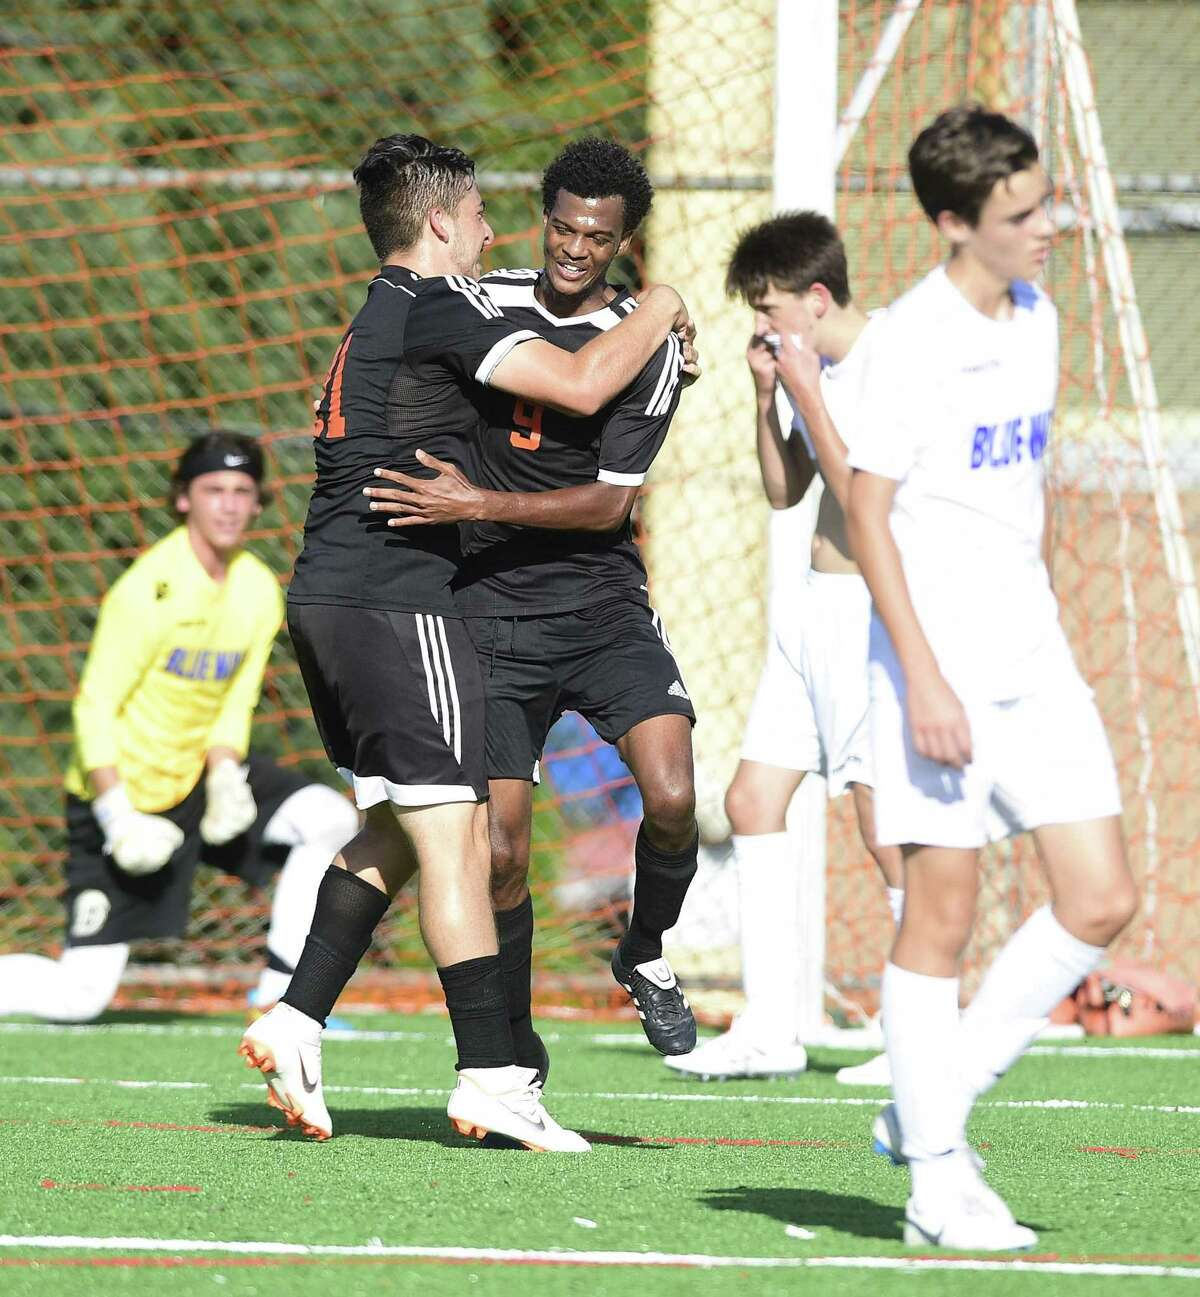 Stamford's Kenly Lalanne (9) center celebrates his goal against Darien during the first half of an FCIAC boys soccer game on Wednesday, Sept. 26, 2018 in Stamford, Connecticut.